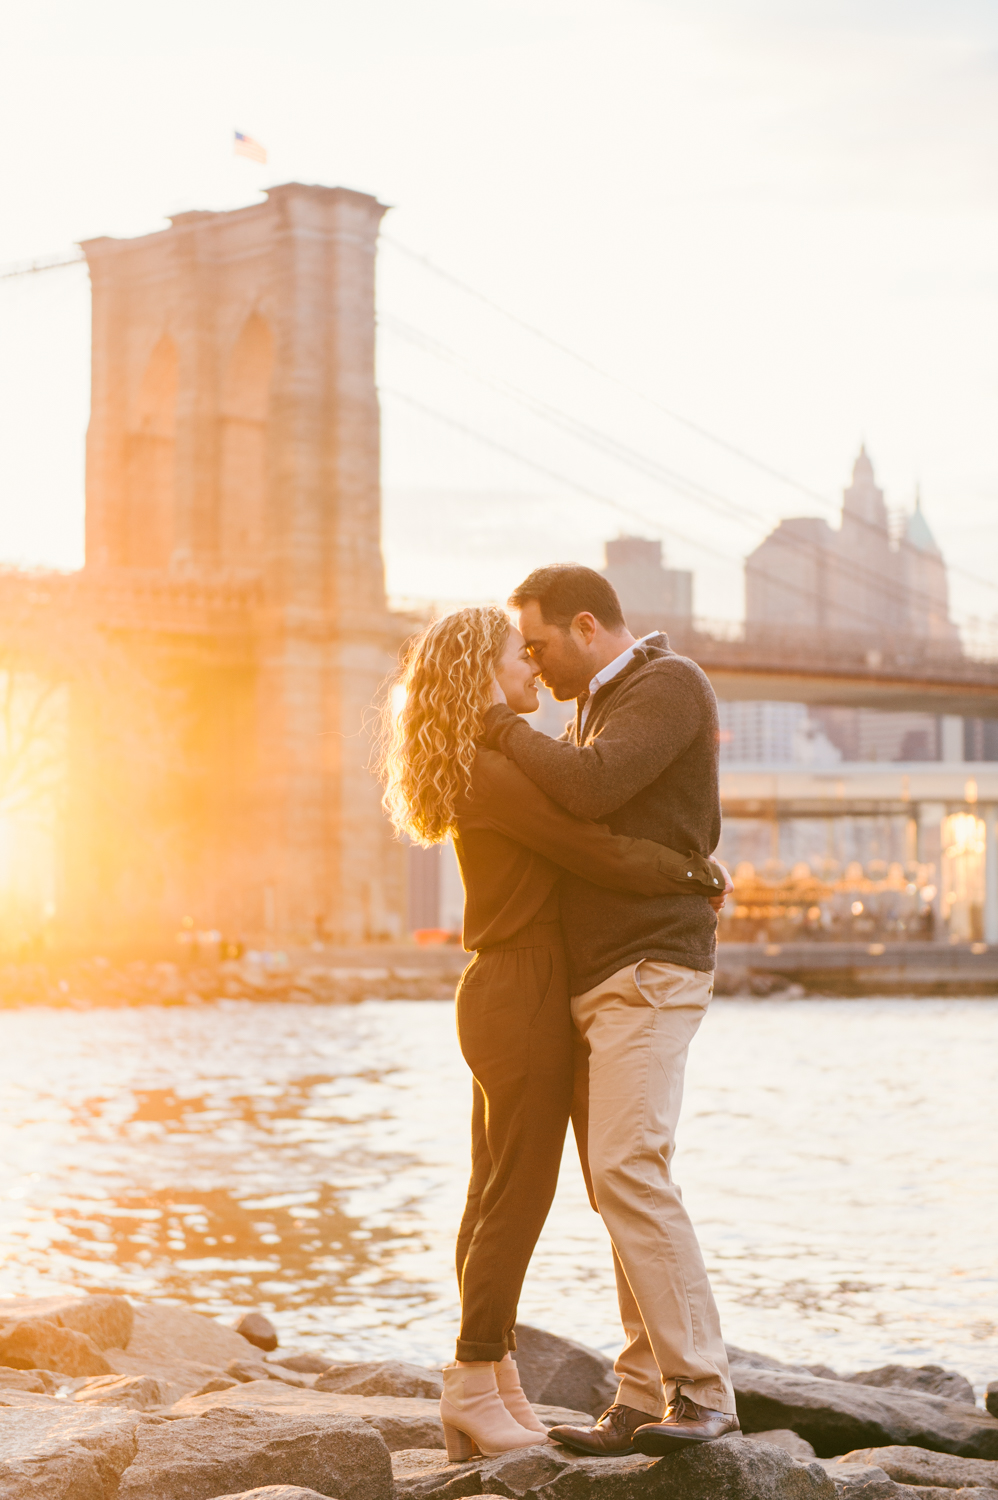 DUMBO.BrooklynBridge.Engagements.MK17.jpg